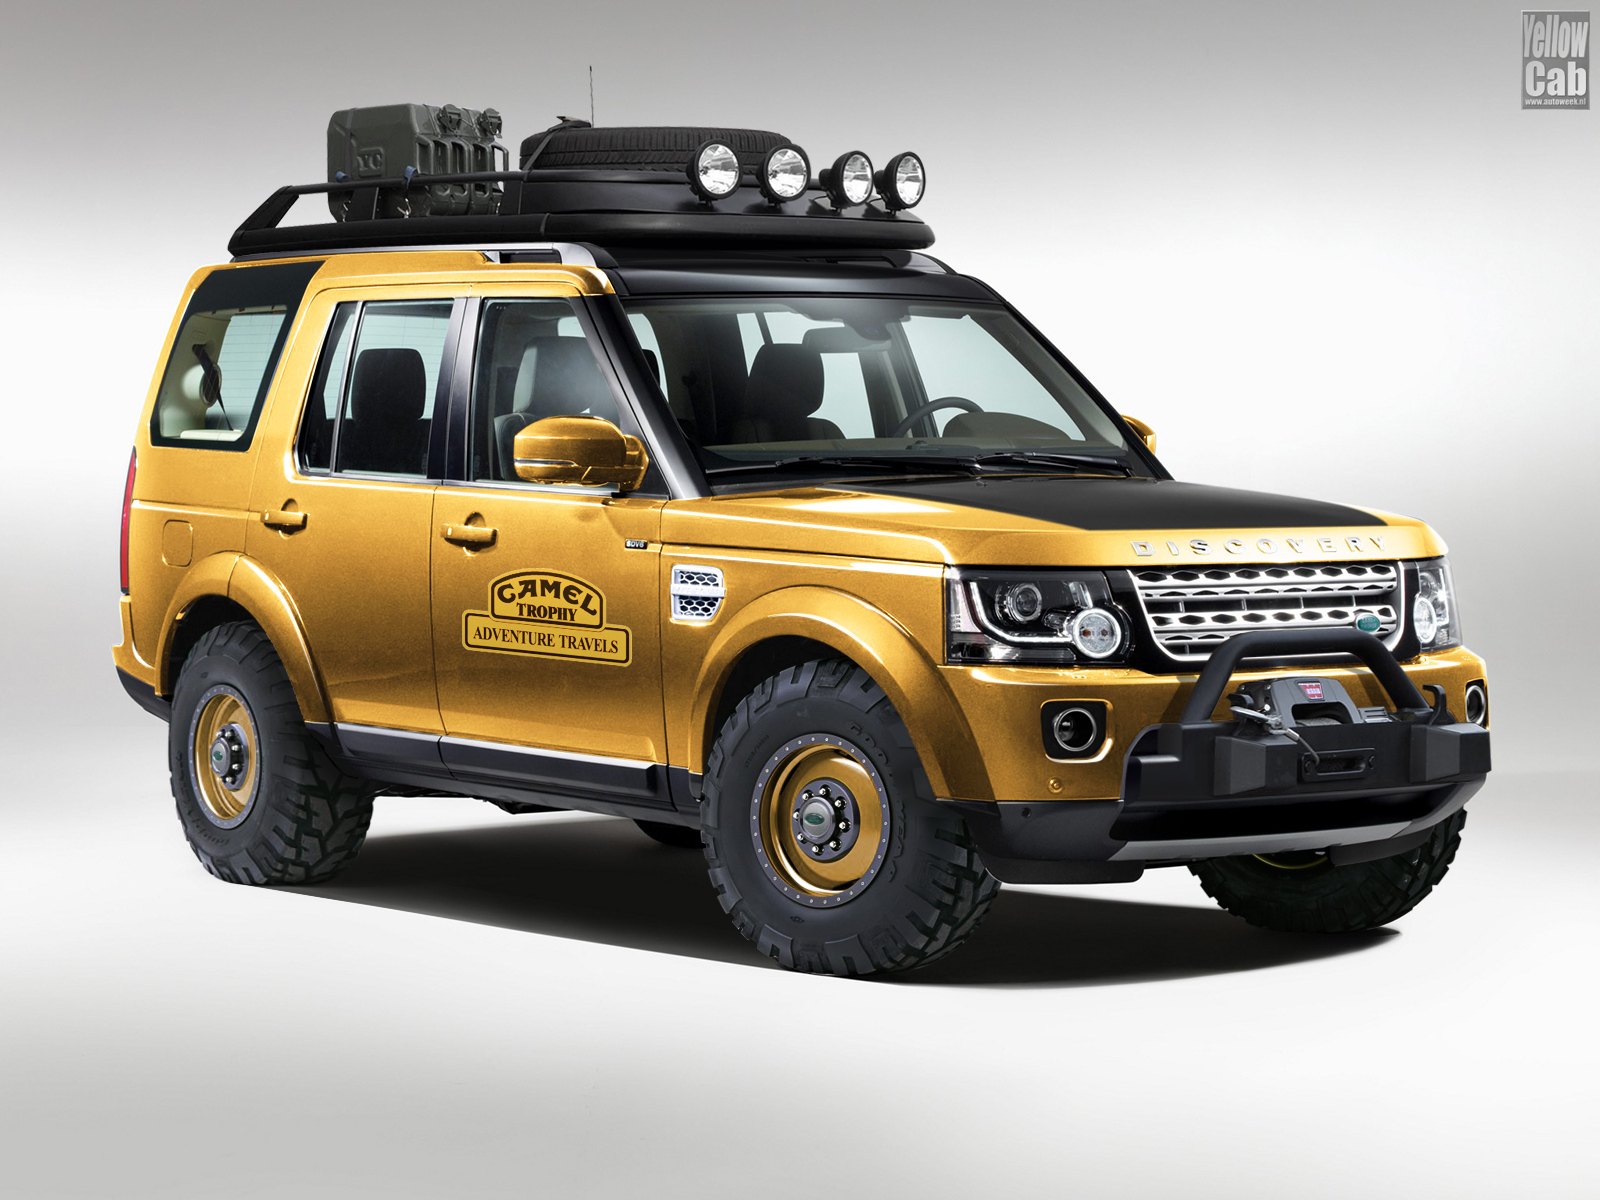 Land Rover Defender Camel Trophy >> Yellow Cab's Profile › Autemo.com › Automotive Design Studio